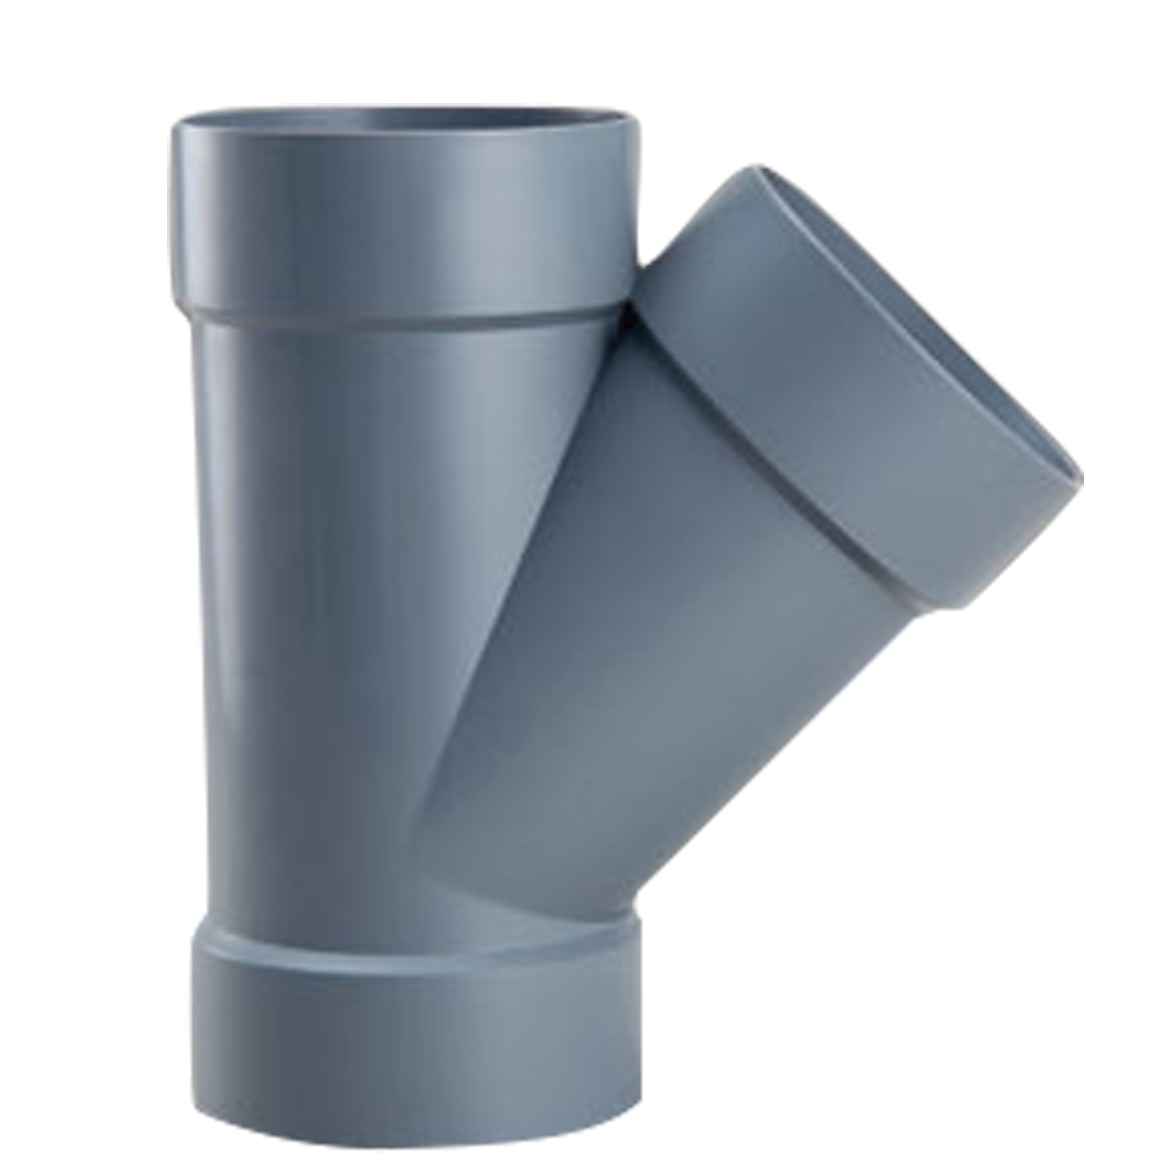 PVC DWV ASTM D2665 Fittings